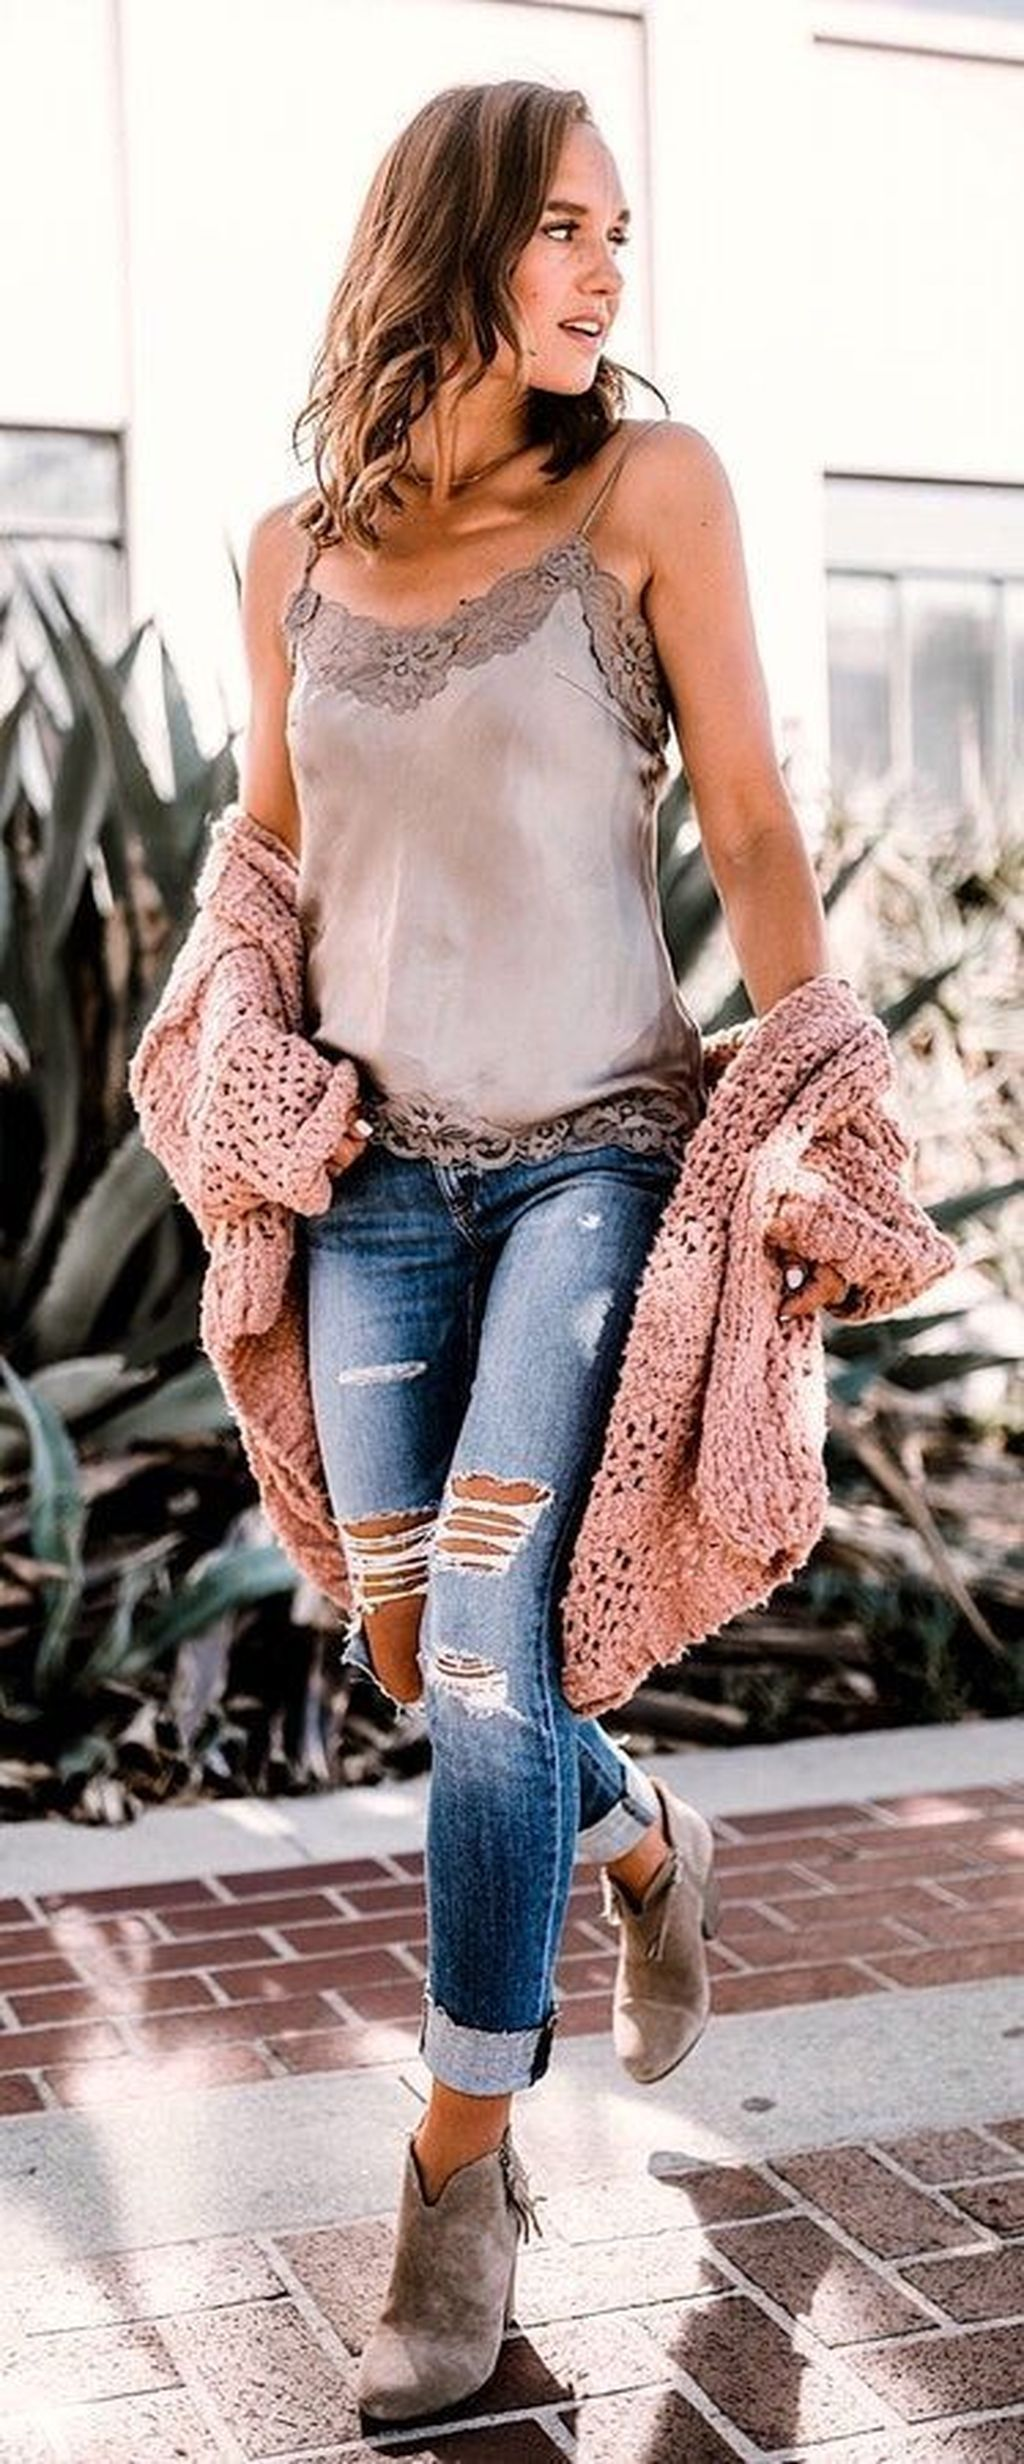 32 Trending Spring Outfits Ideas 2019 #trendyspringoutfits